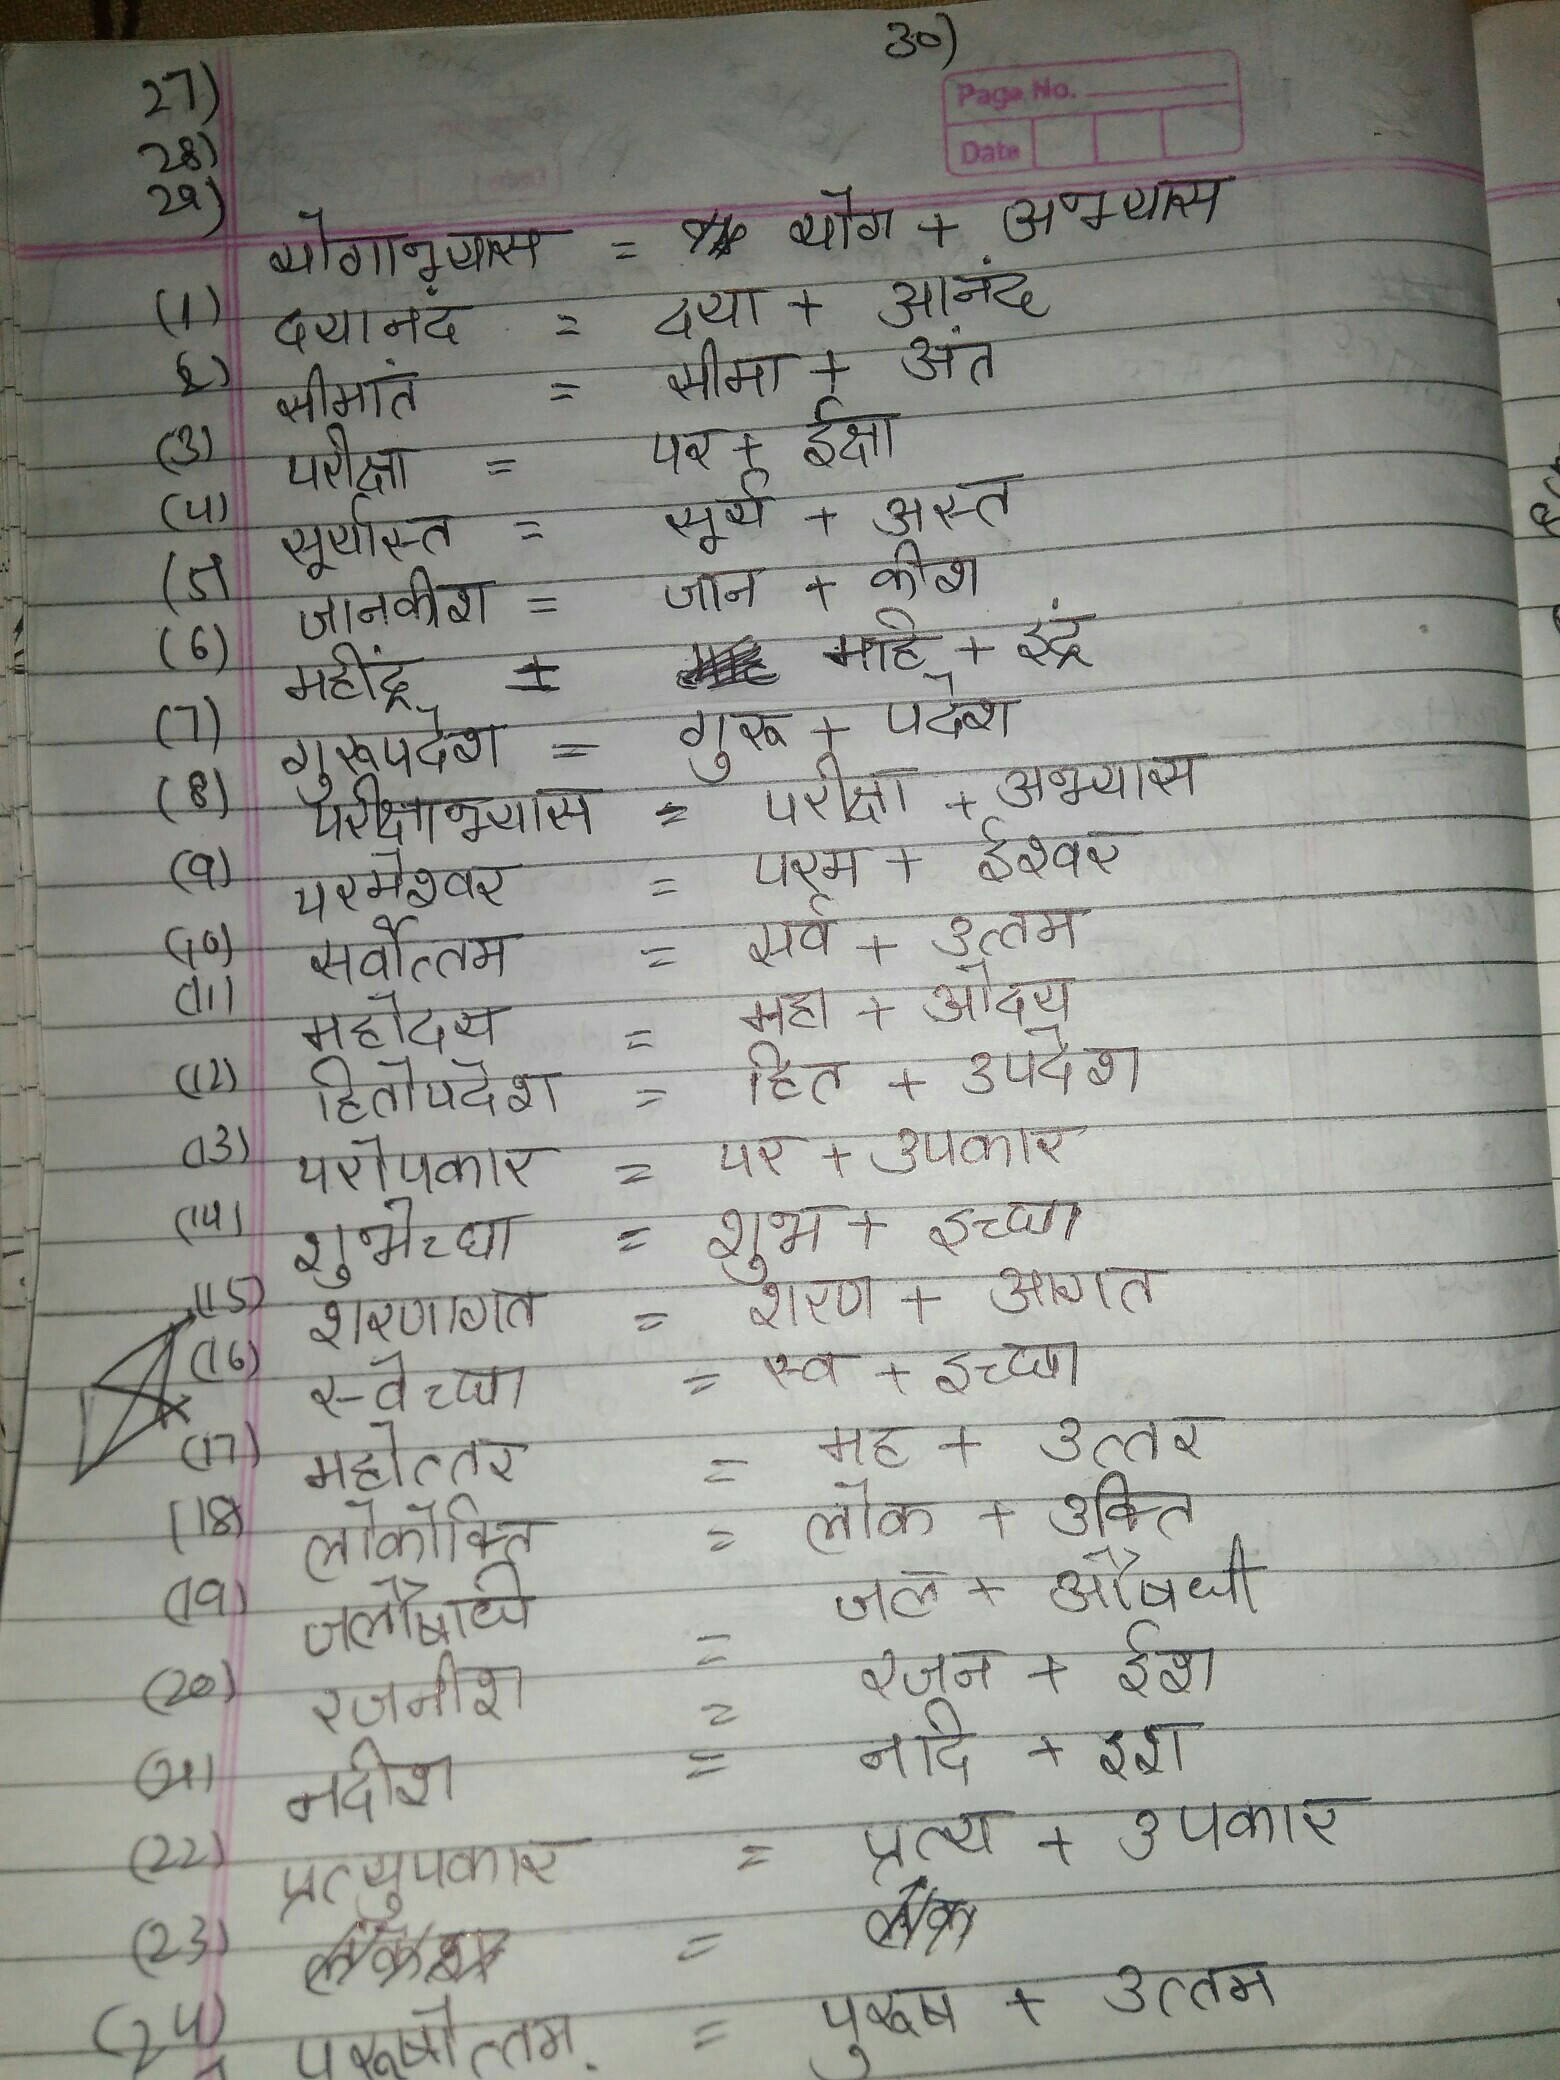 Swar Sandhi Ndhi Viched Hindi Grammar Worksheet Pls Help